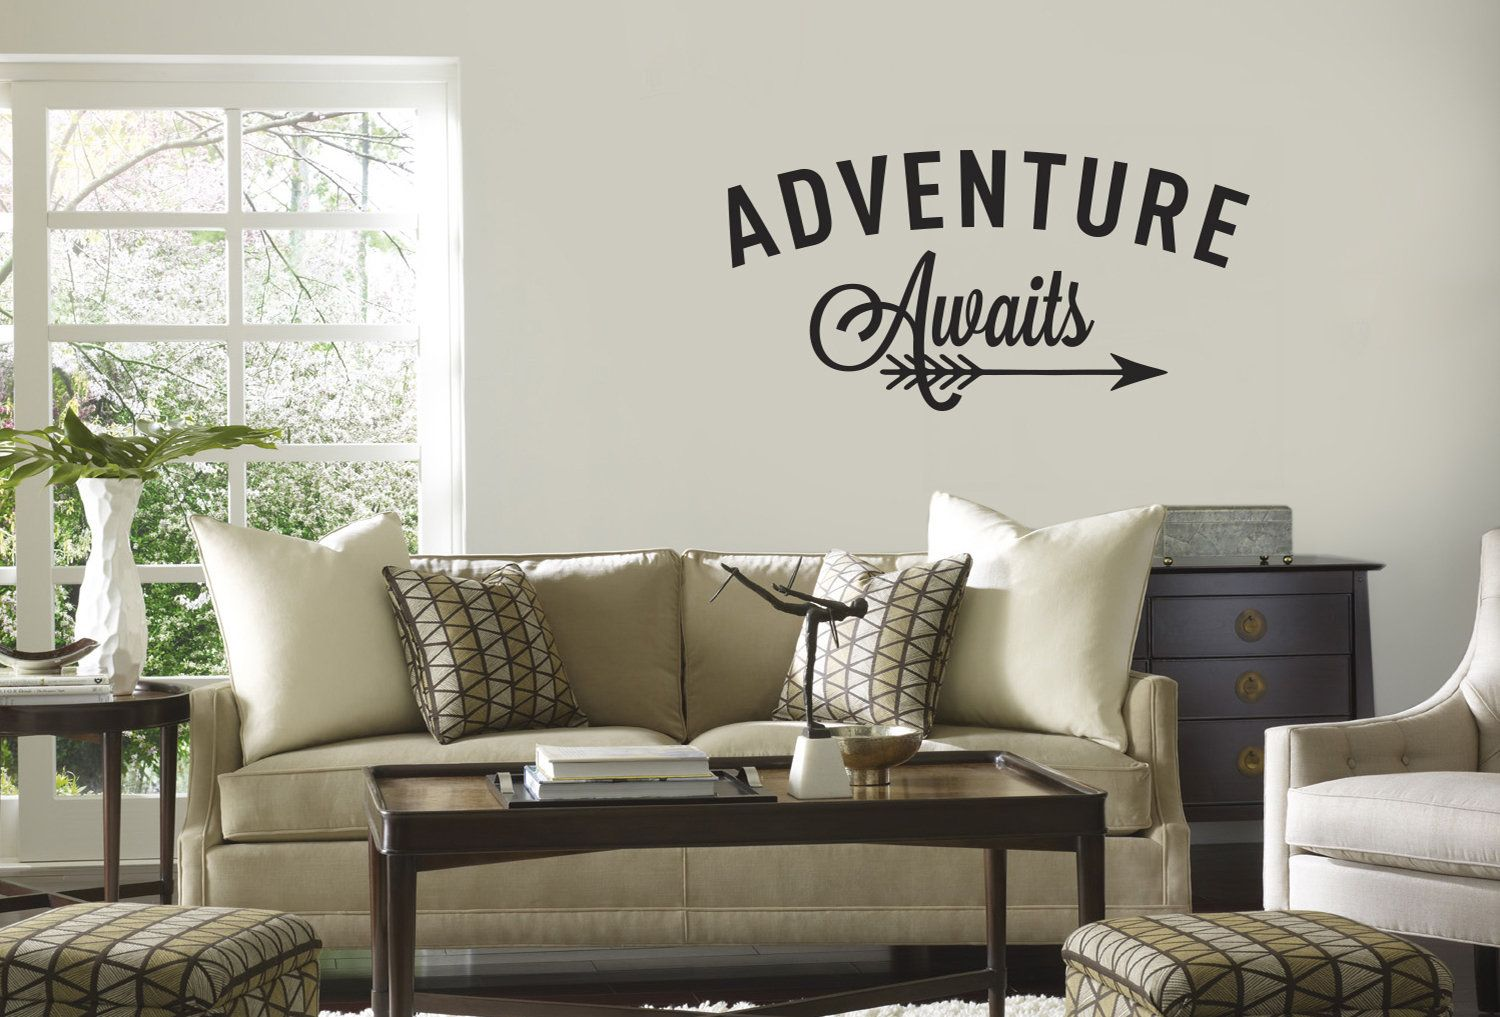 Wall decal quote adventure awaits arrow vinyl wall decal travel